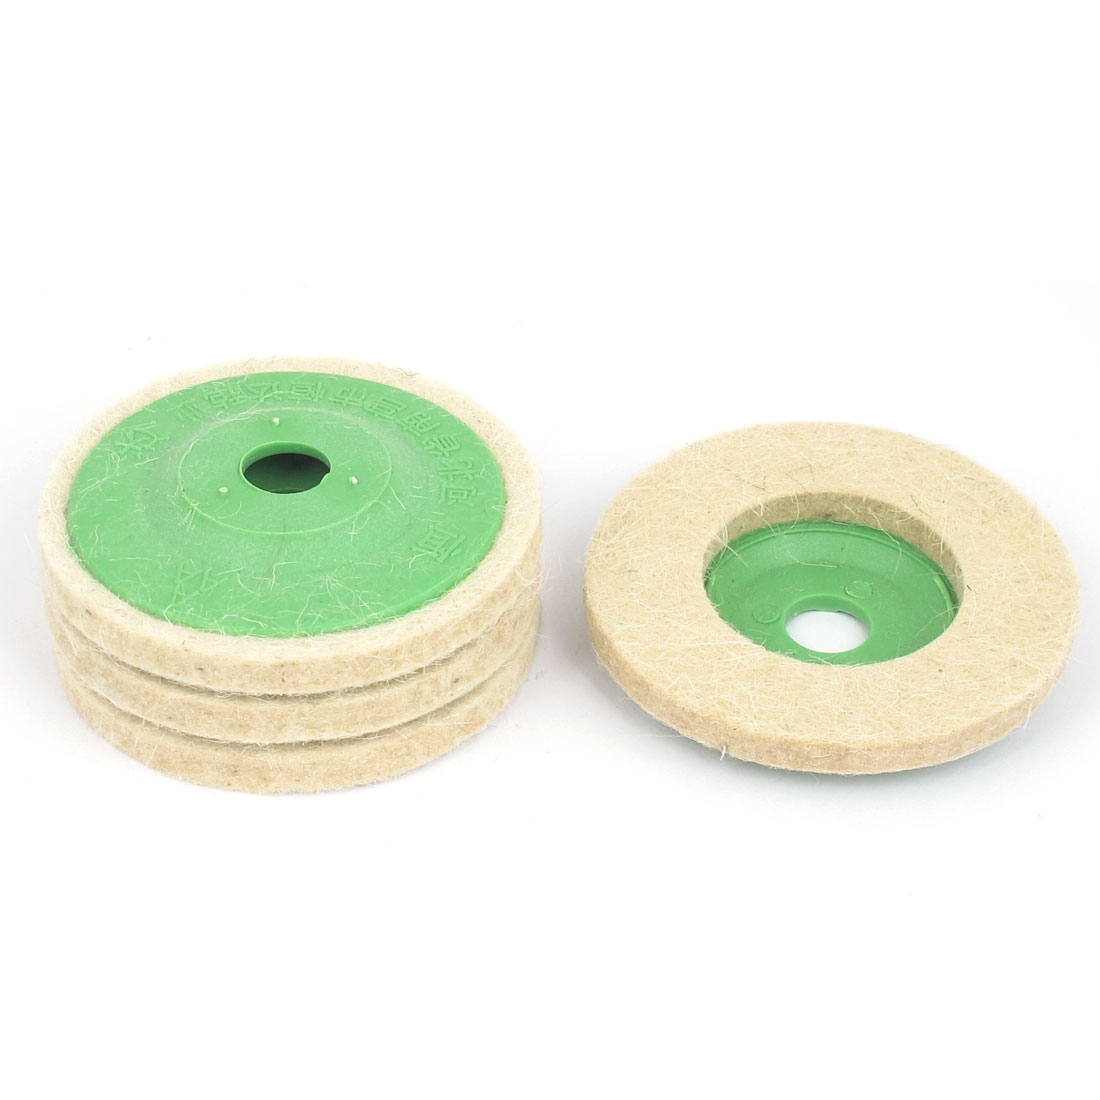 95mm Outer Dia Wool Tools Felt Polishing Wheel Buffing Discs Pads Beige 4pcs